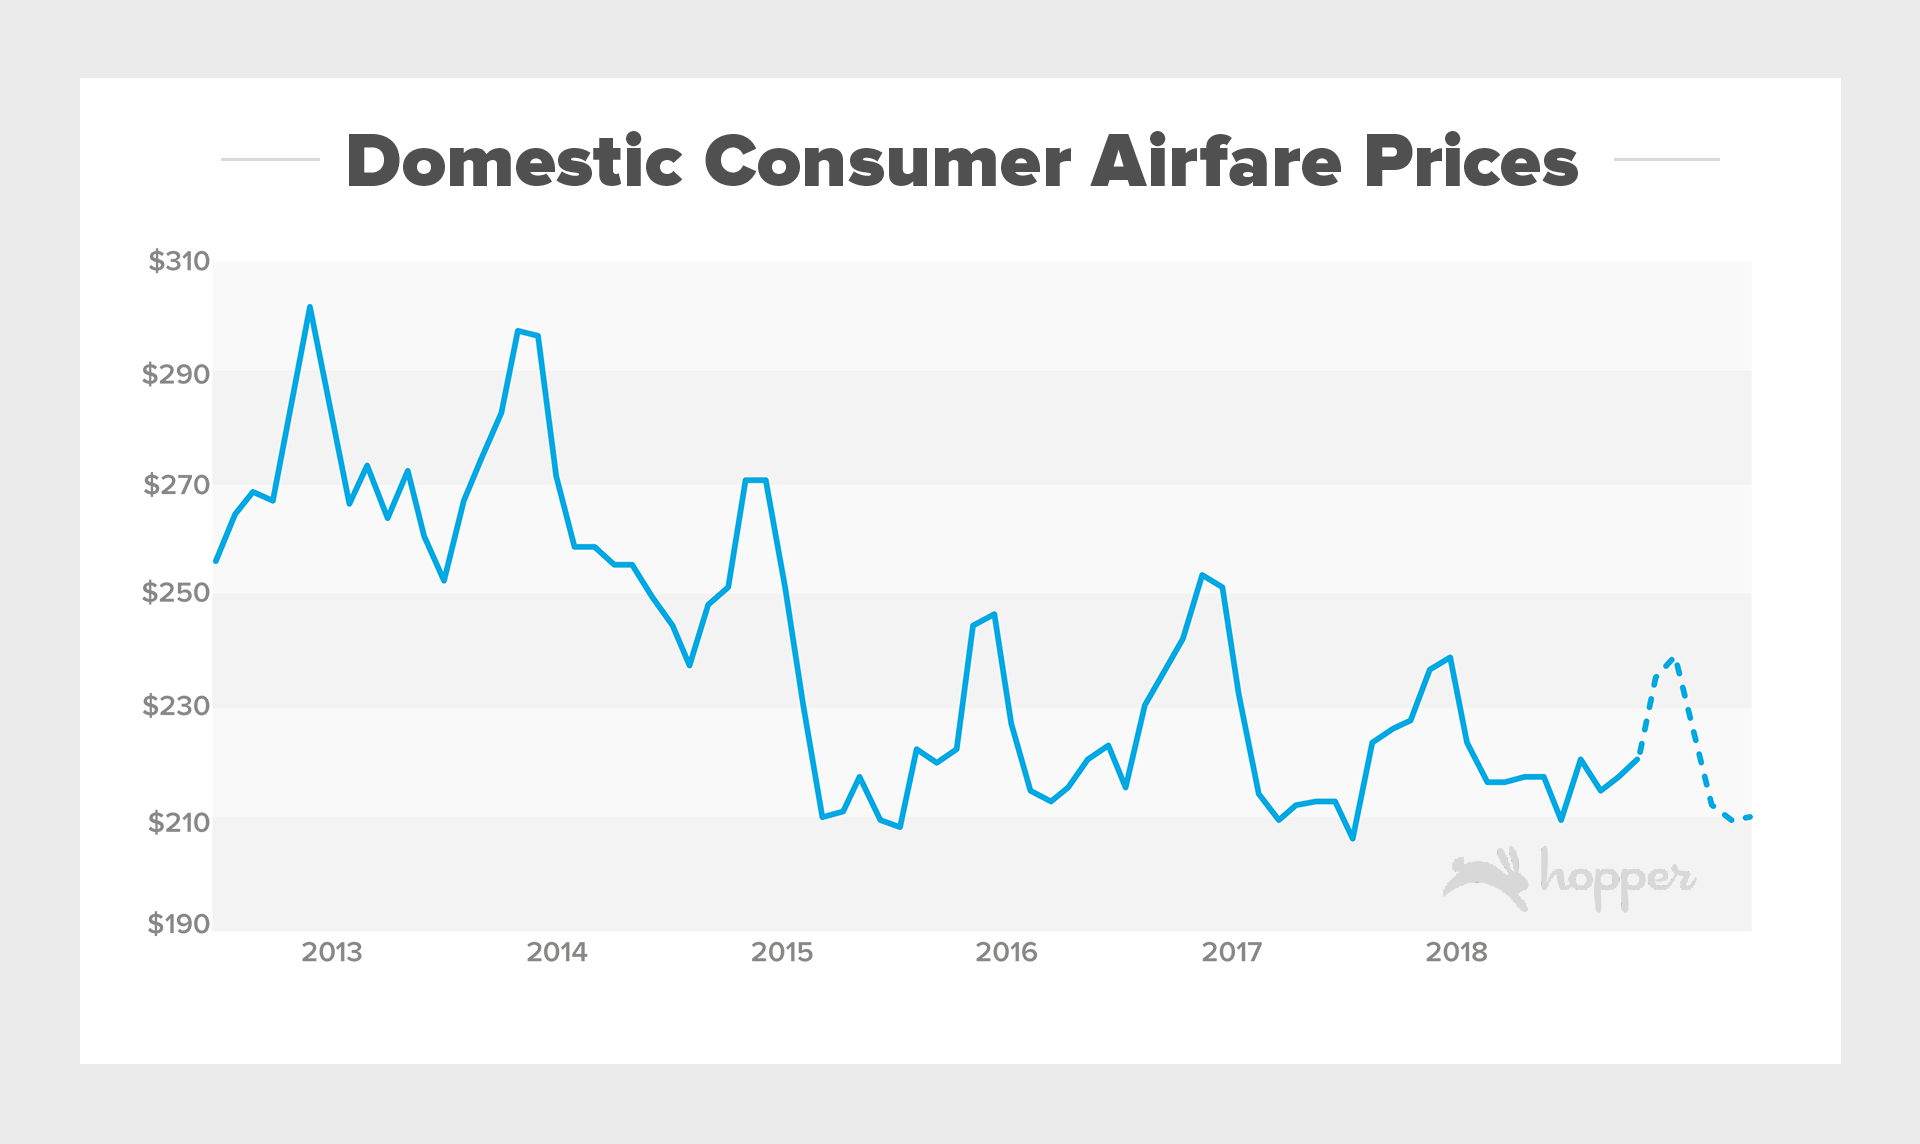 Domestic Consumer Airfare Prices